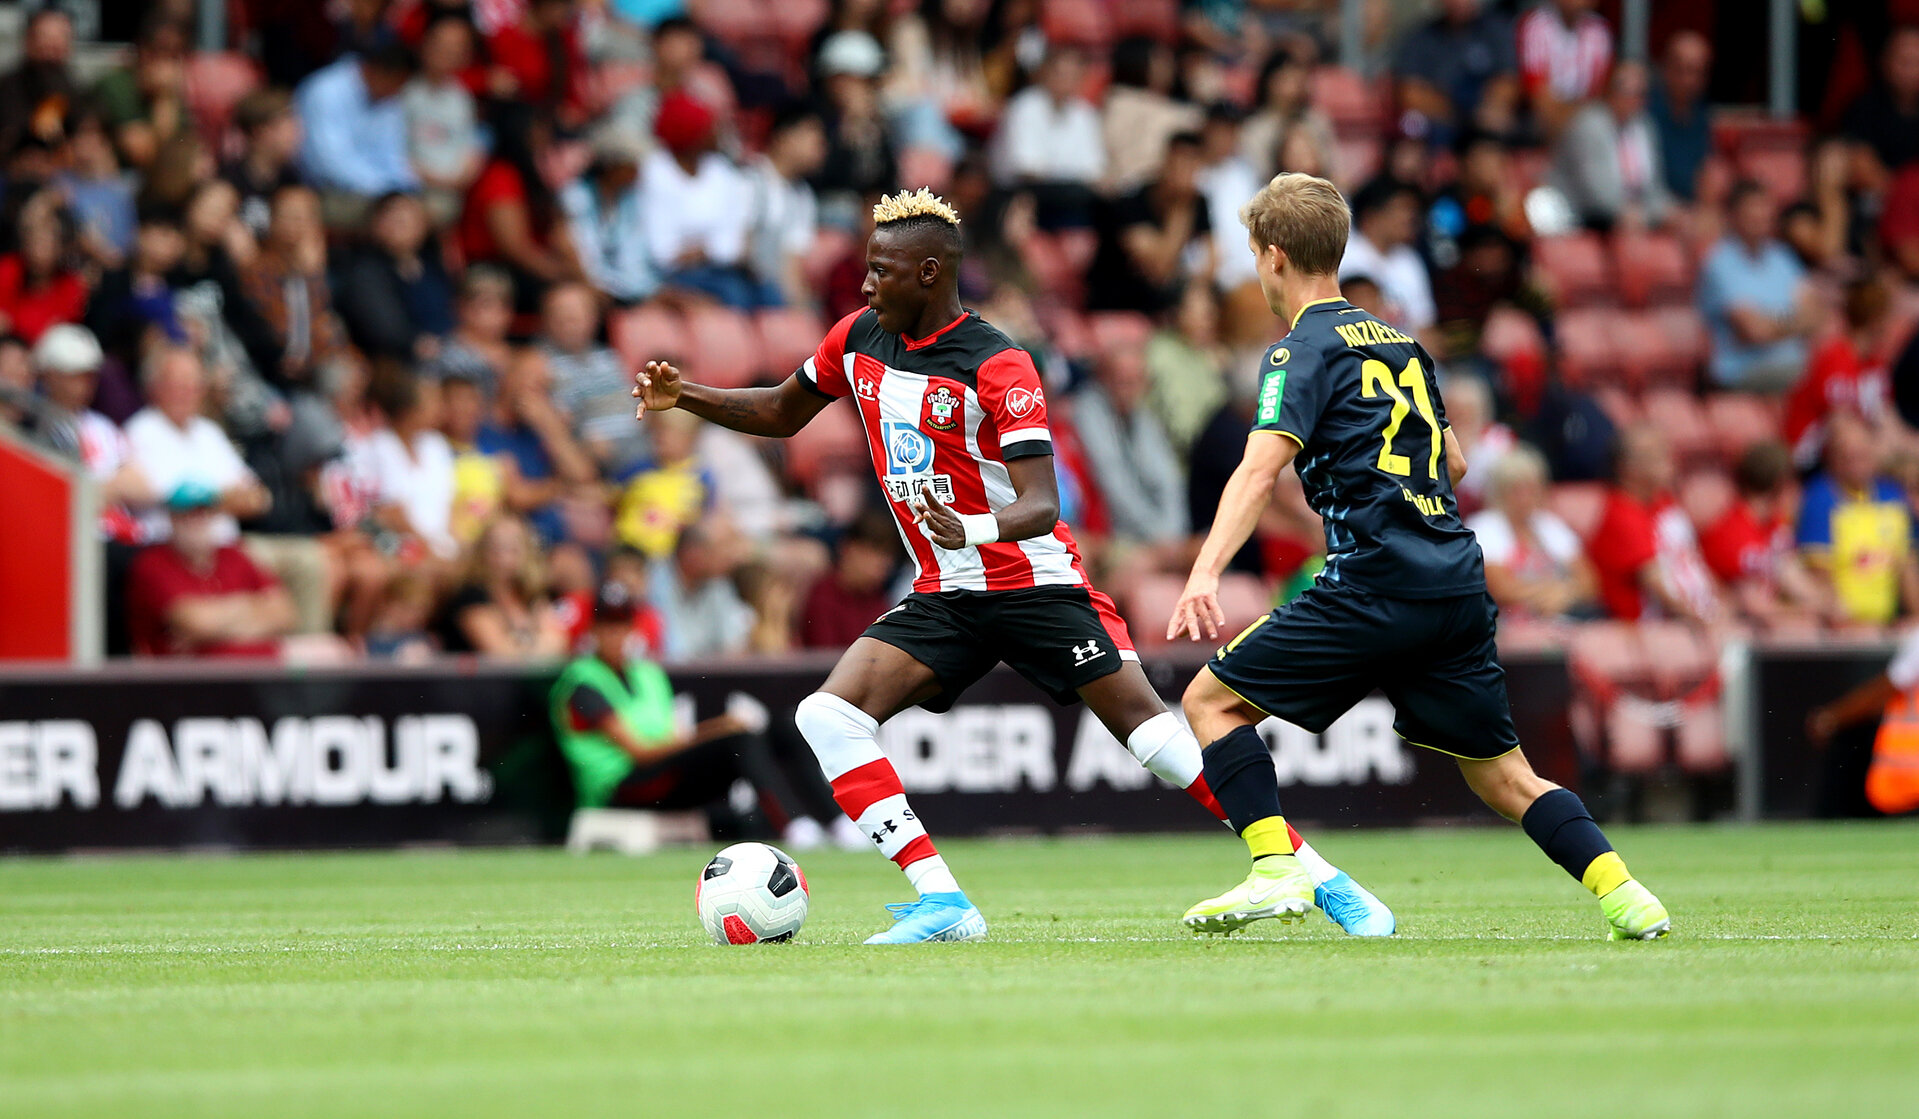 SOUTHAMPTON, ENGLAND - AUGUST 03: Moussa Djenepo of Southampton during the Pre-Season Friendly match between Southampton FC and FC Köln at St. Mary's Stadium on August 03, 2019 in Southampton, England. (Photo by Matt Watson/Southampton FC via Getty Images,)